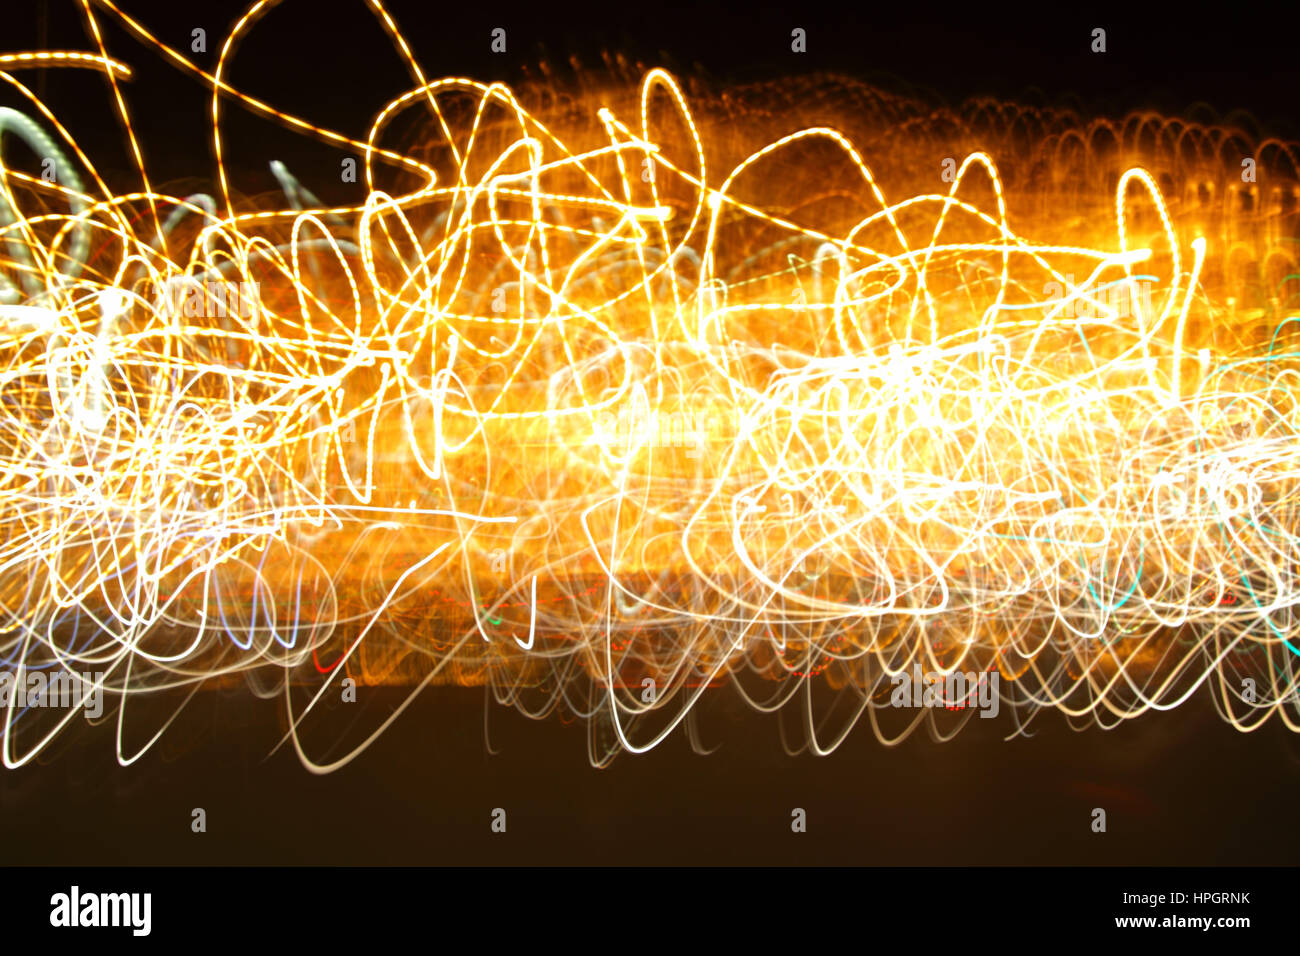 Chaotic motion of lights -  abstract photo  background - energy concept - Stock Image